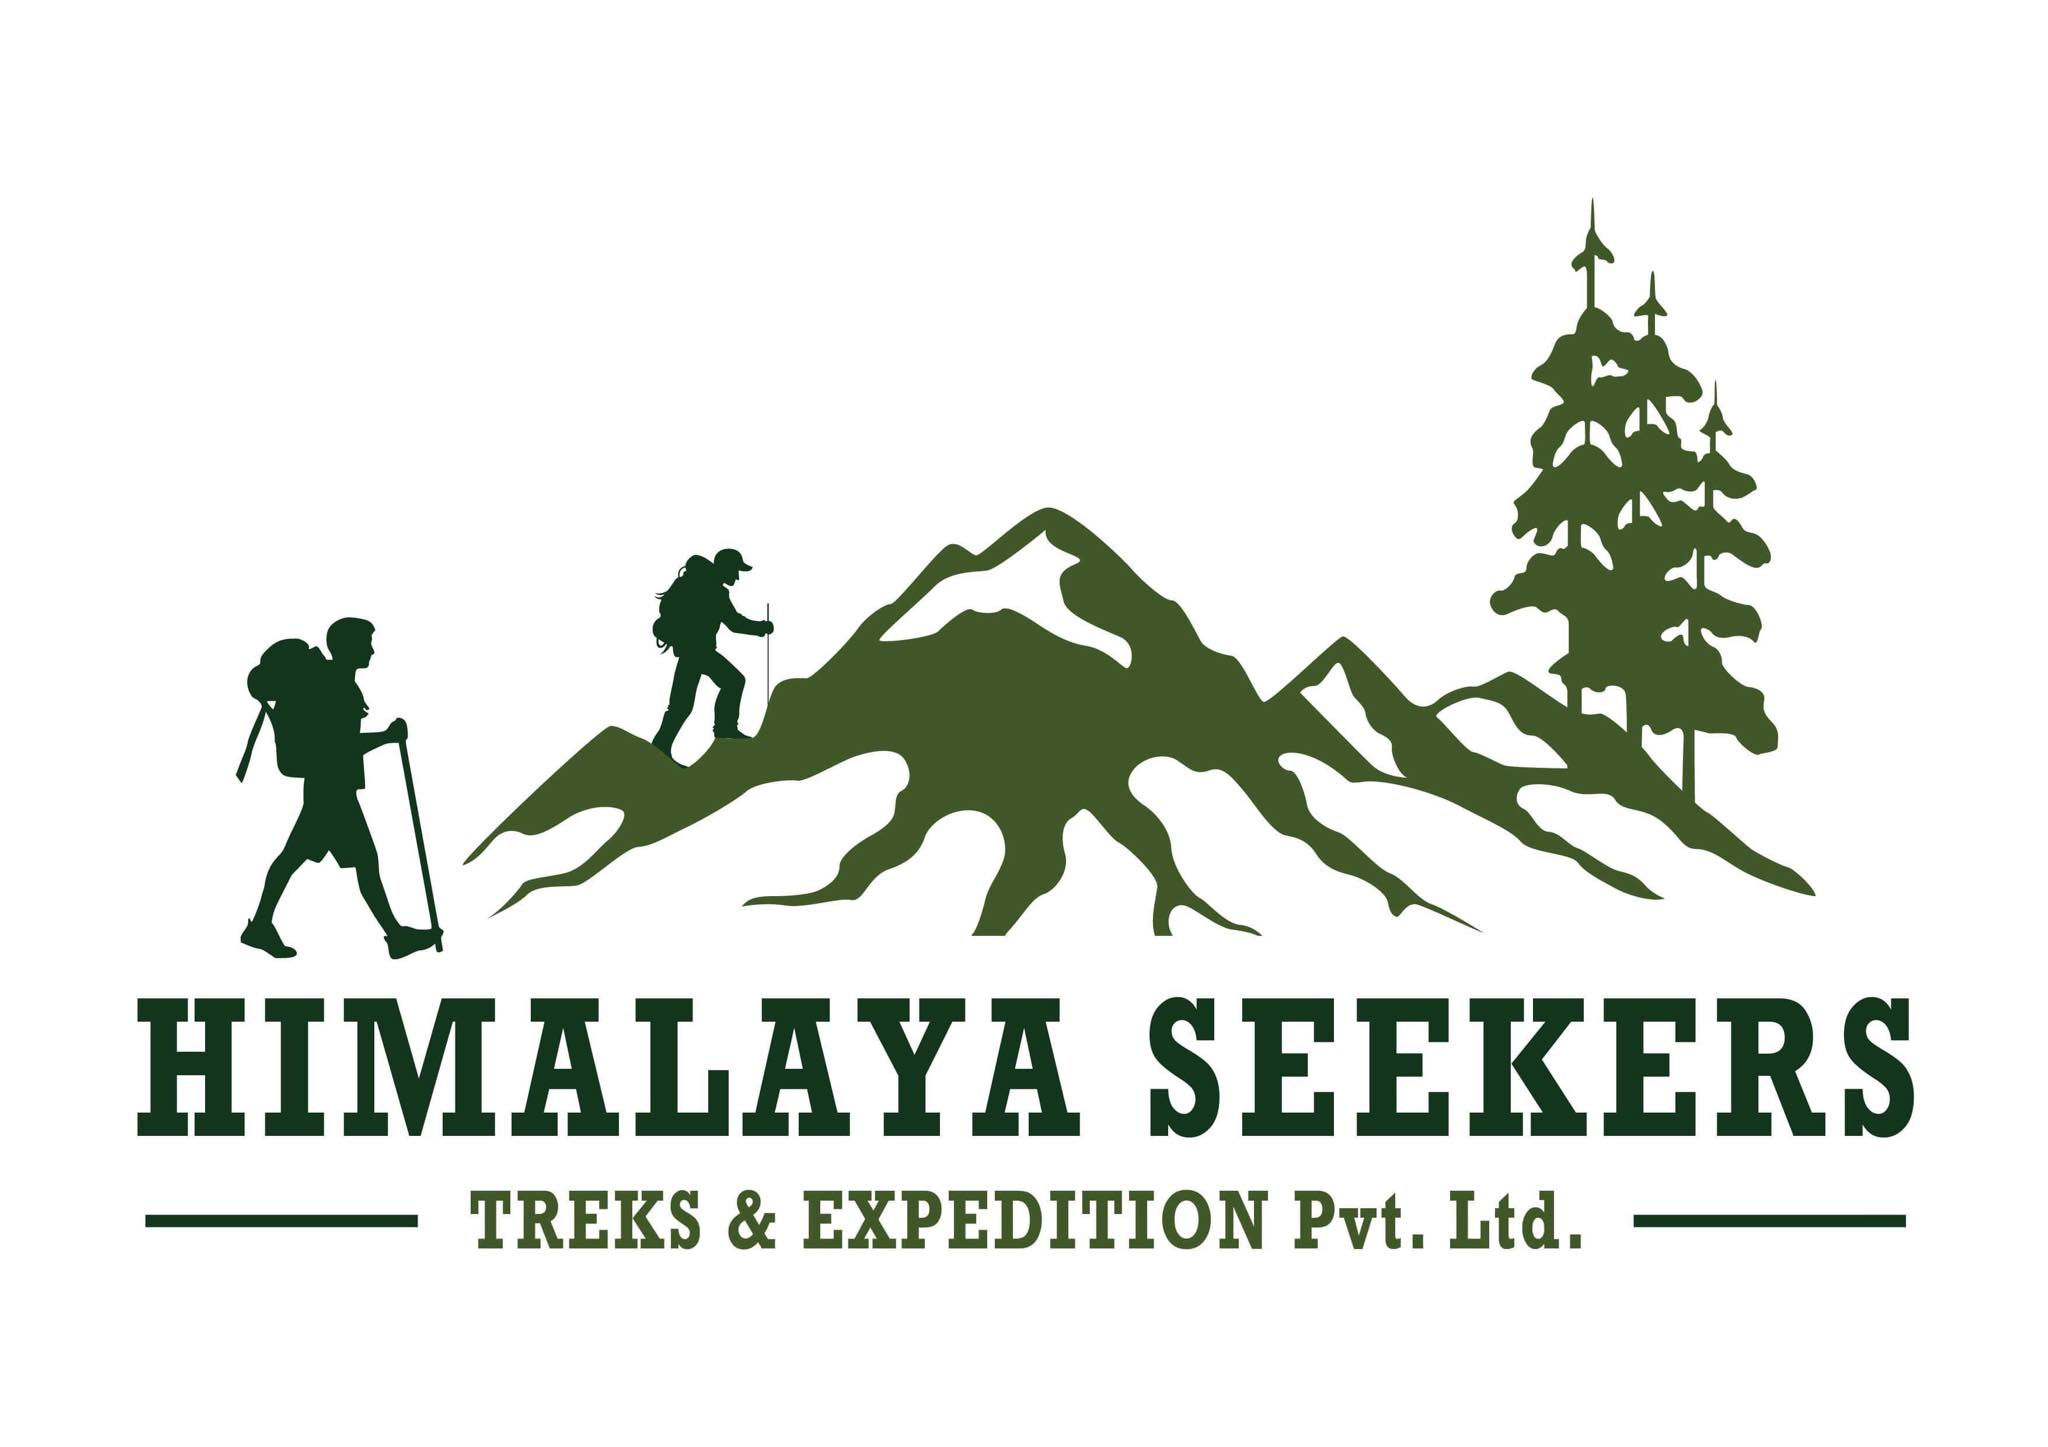 Himalaya Seekers Treks & Expedition P. Ltd